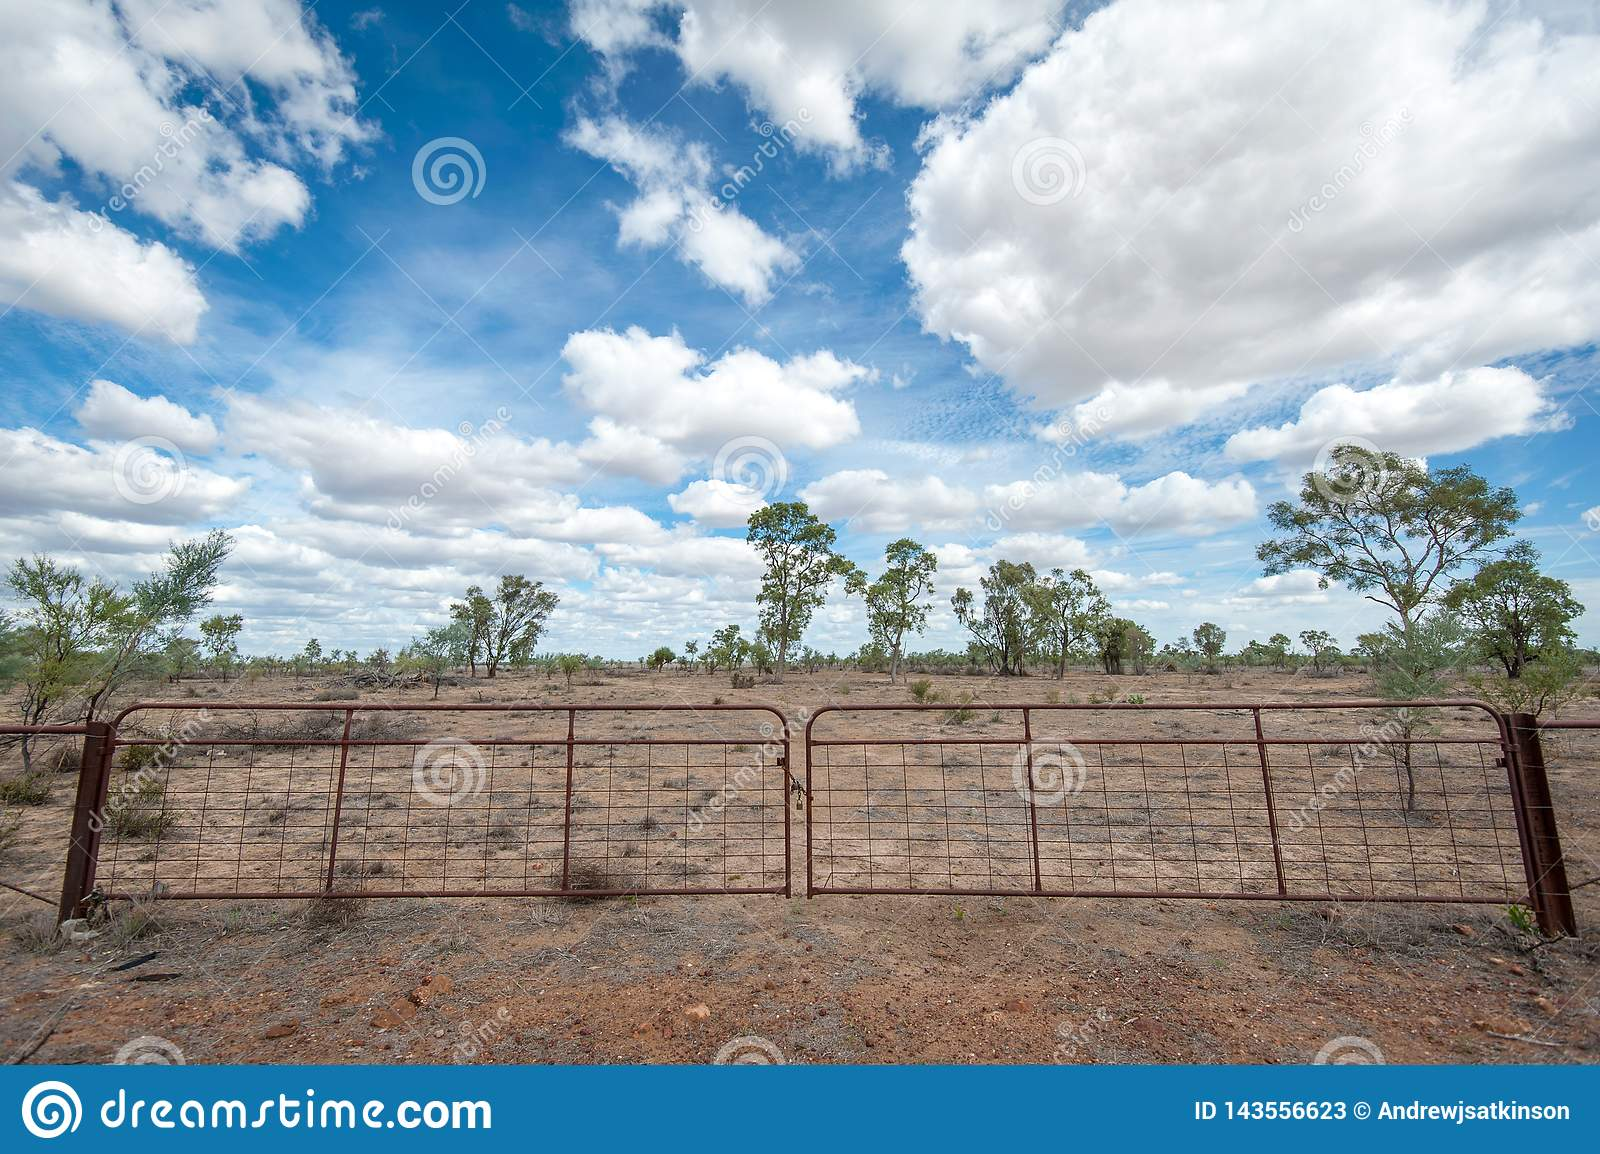 Gate to an outback property in the dry